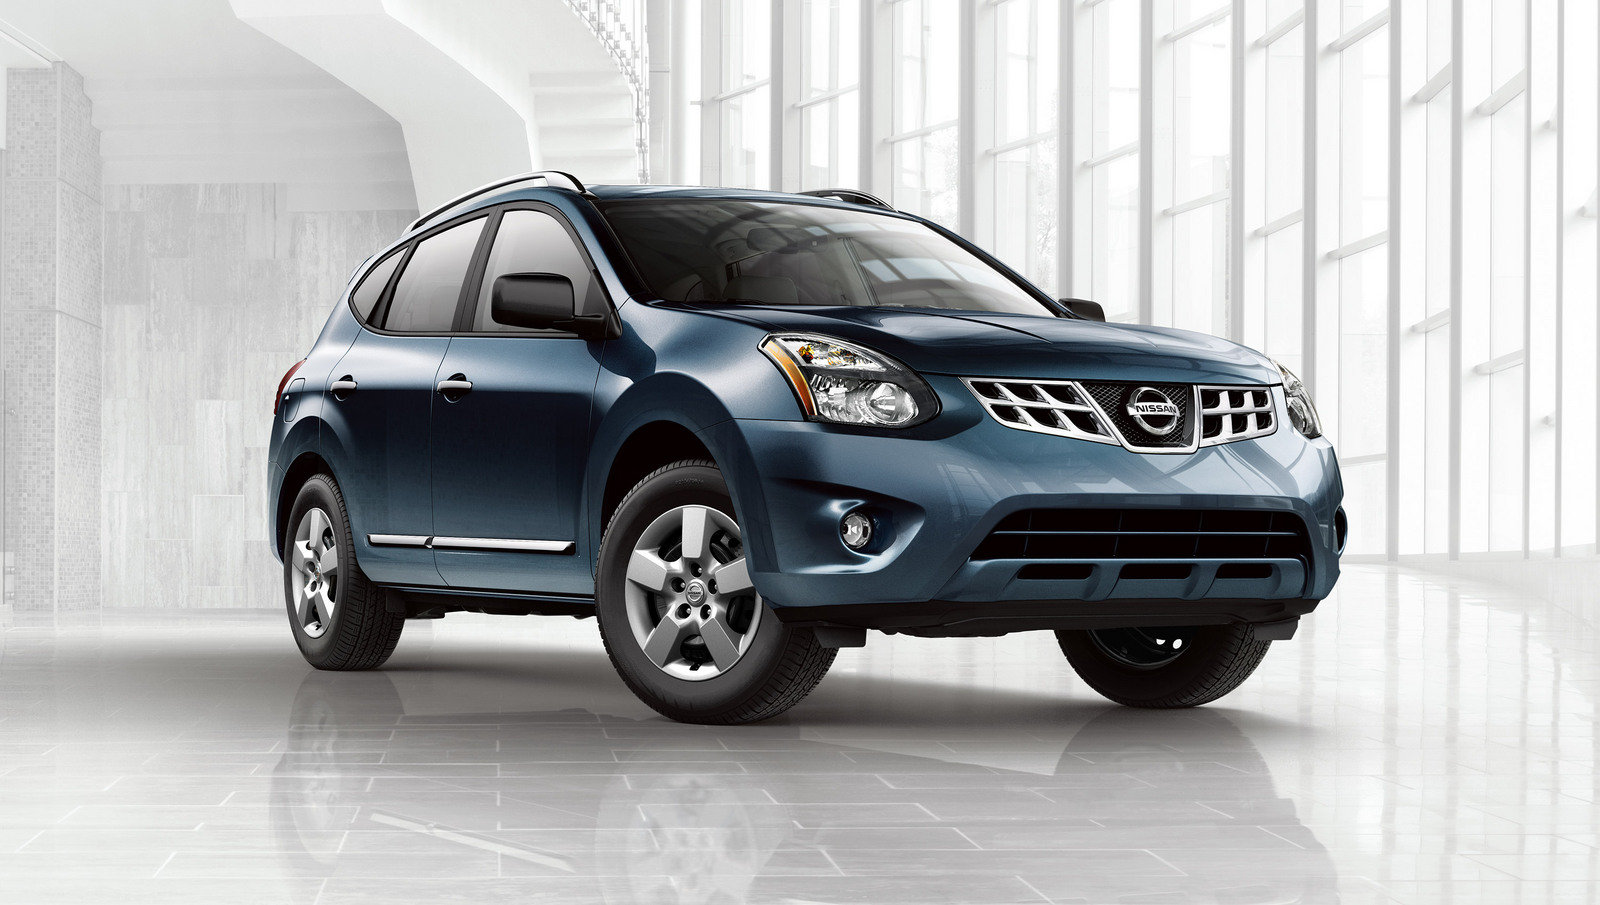 new 2014 nissan rogue select price quote w msrp and invoice autos post. Black Bedroom Furniture Sets. Home Design Ideas